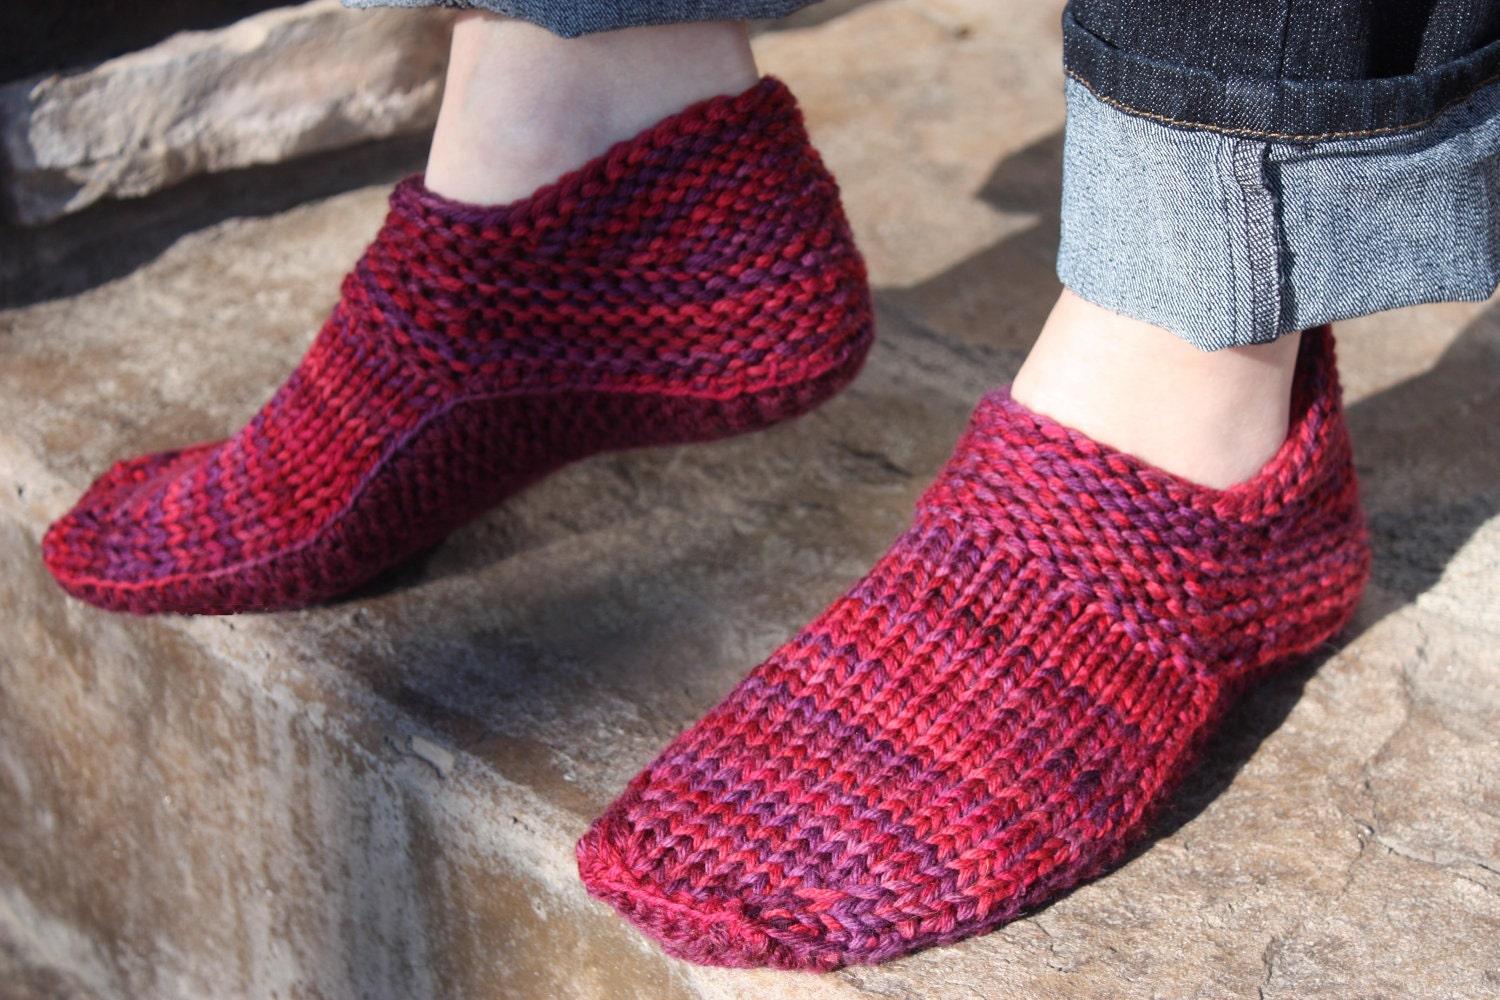 Knitted House Slippers Pattern : Options Slippers PATTERN Knit knit w/crochet plus Felting